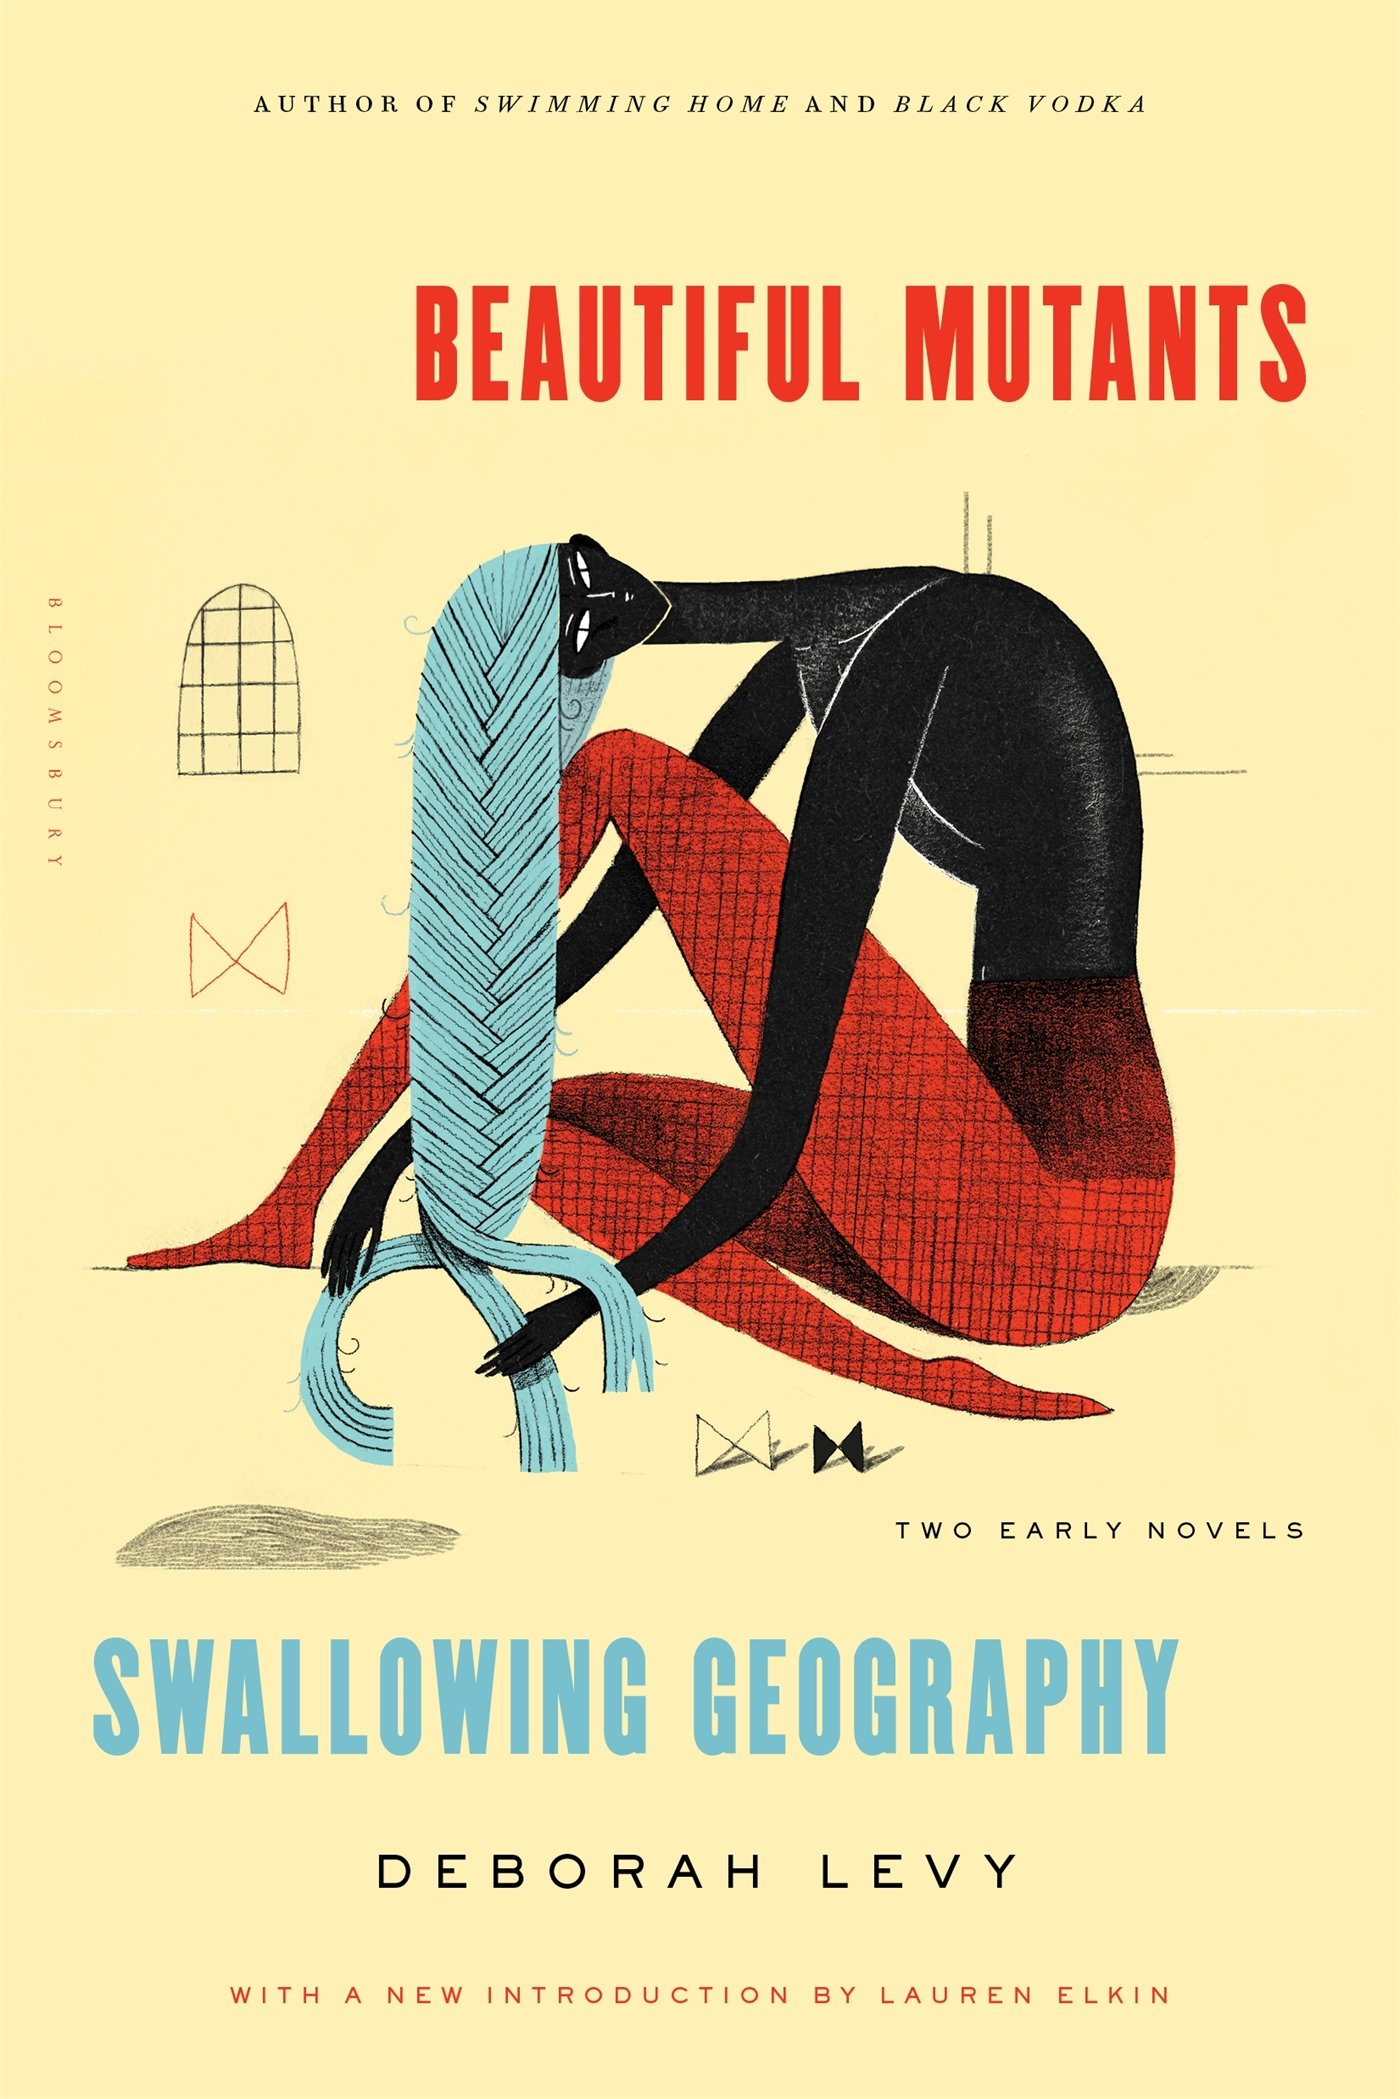 Read Online Beautiful Mutants and Swallowing Geography: Two Early Novels PDF ePub fb2 ebook